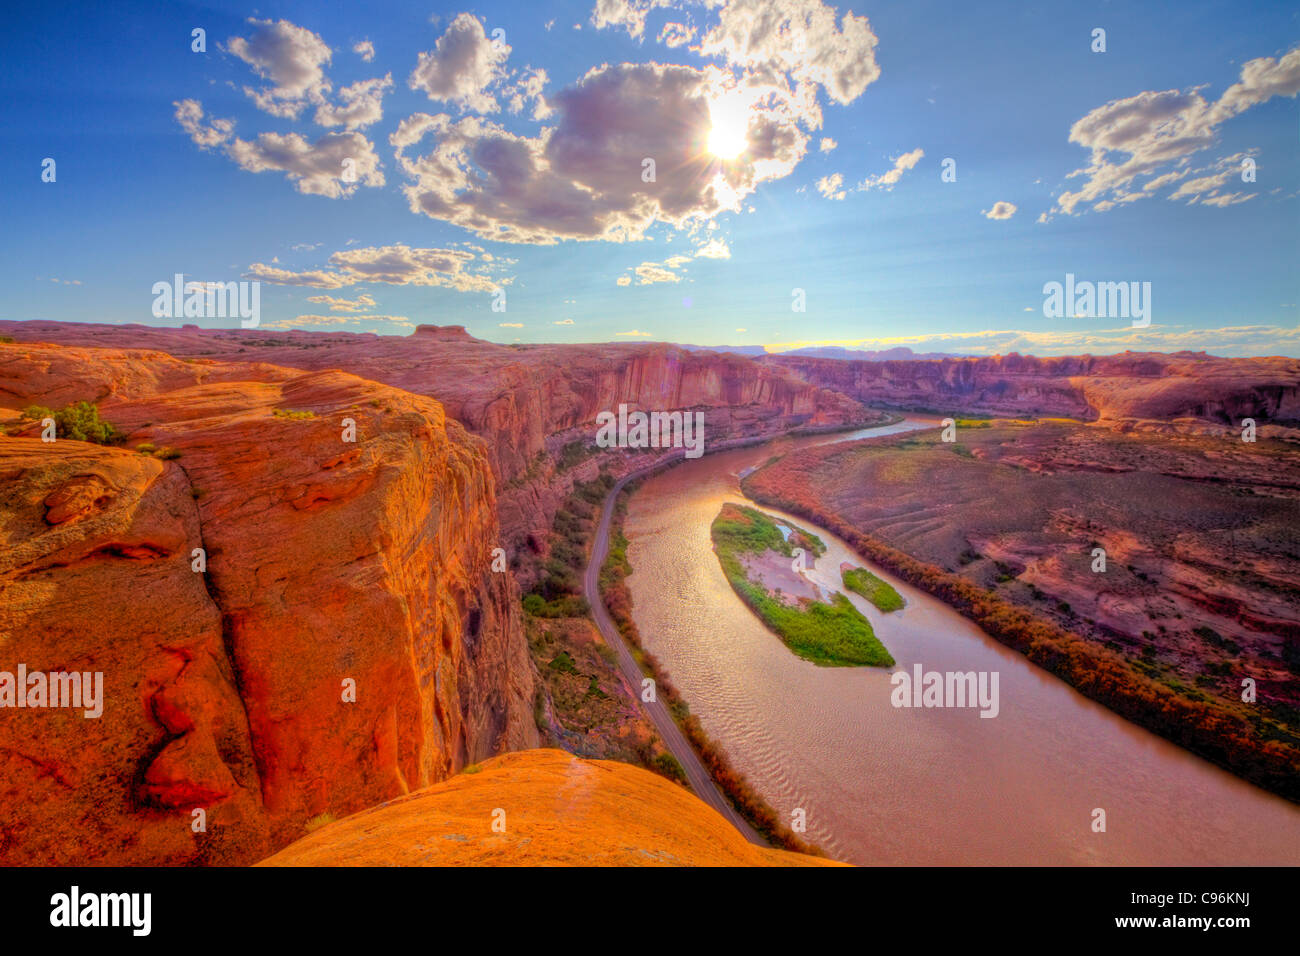 View of Colorado River near Moab, Utah, Hell's Revenge Trail Glen Canyon sandstone walls - Stock Image